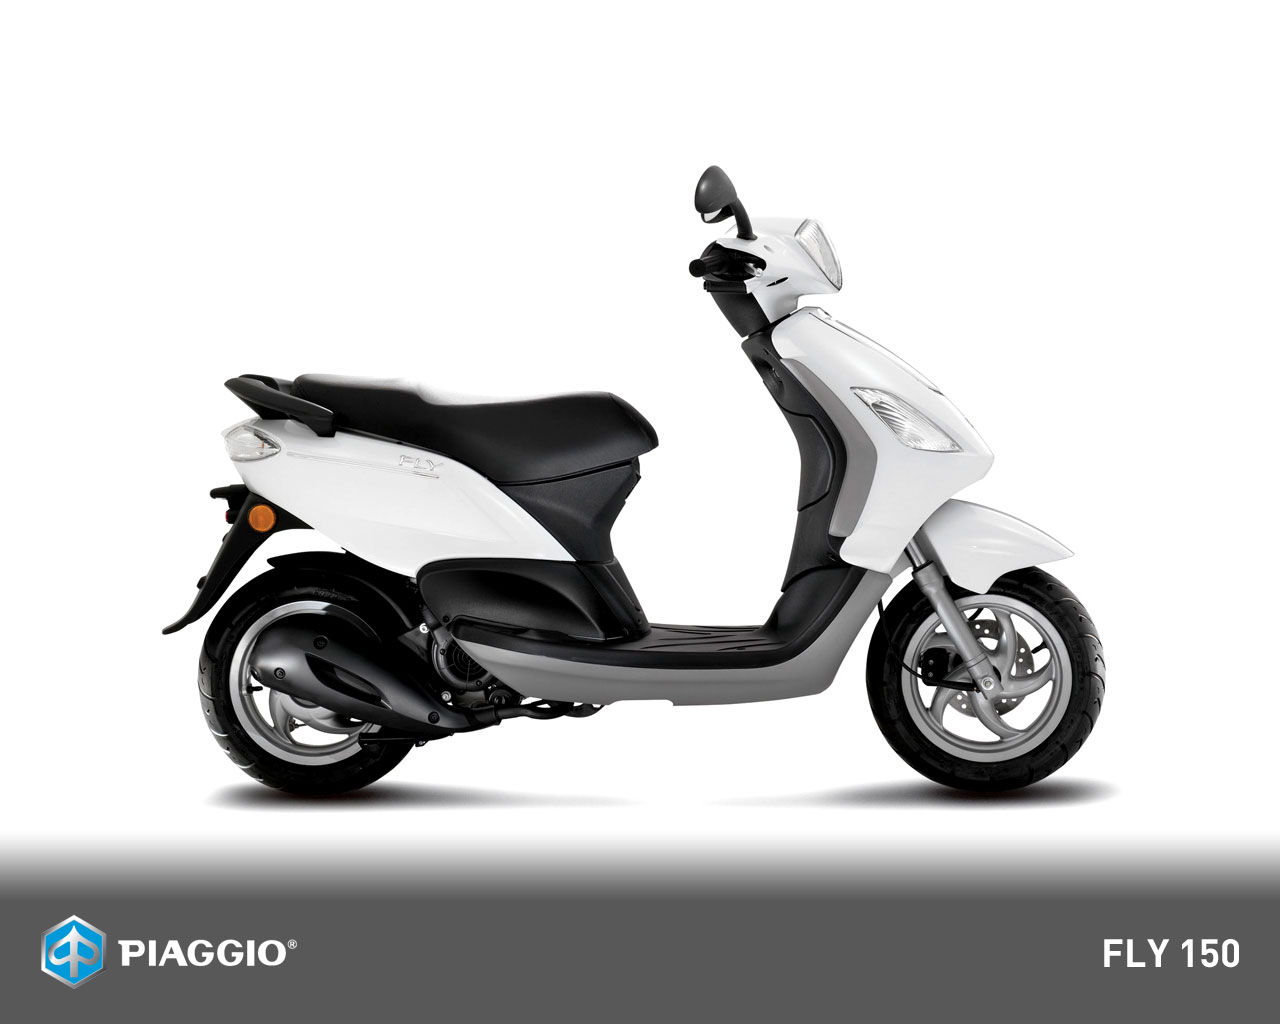 2012 Piaggio Fly 150 | Top Speed